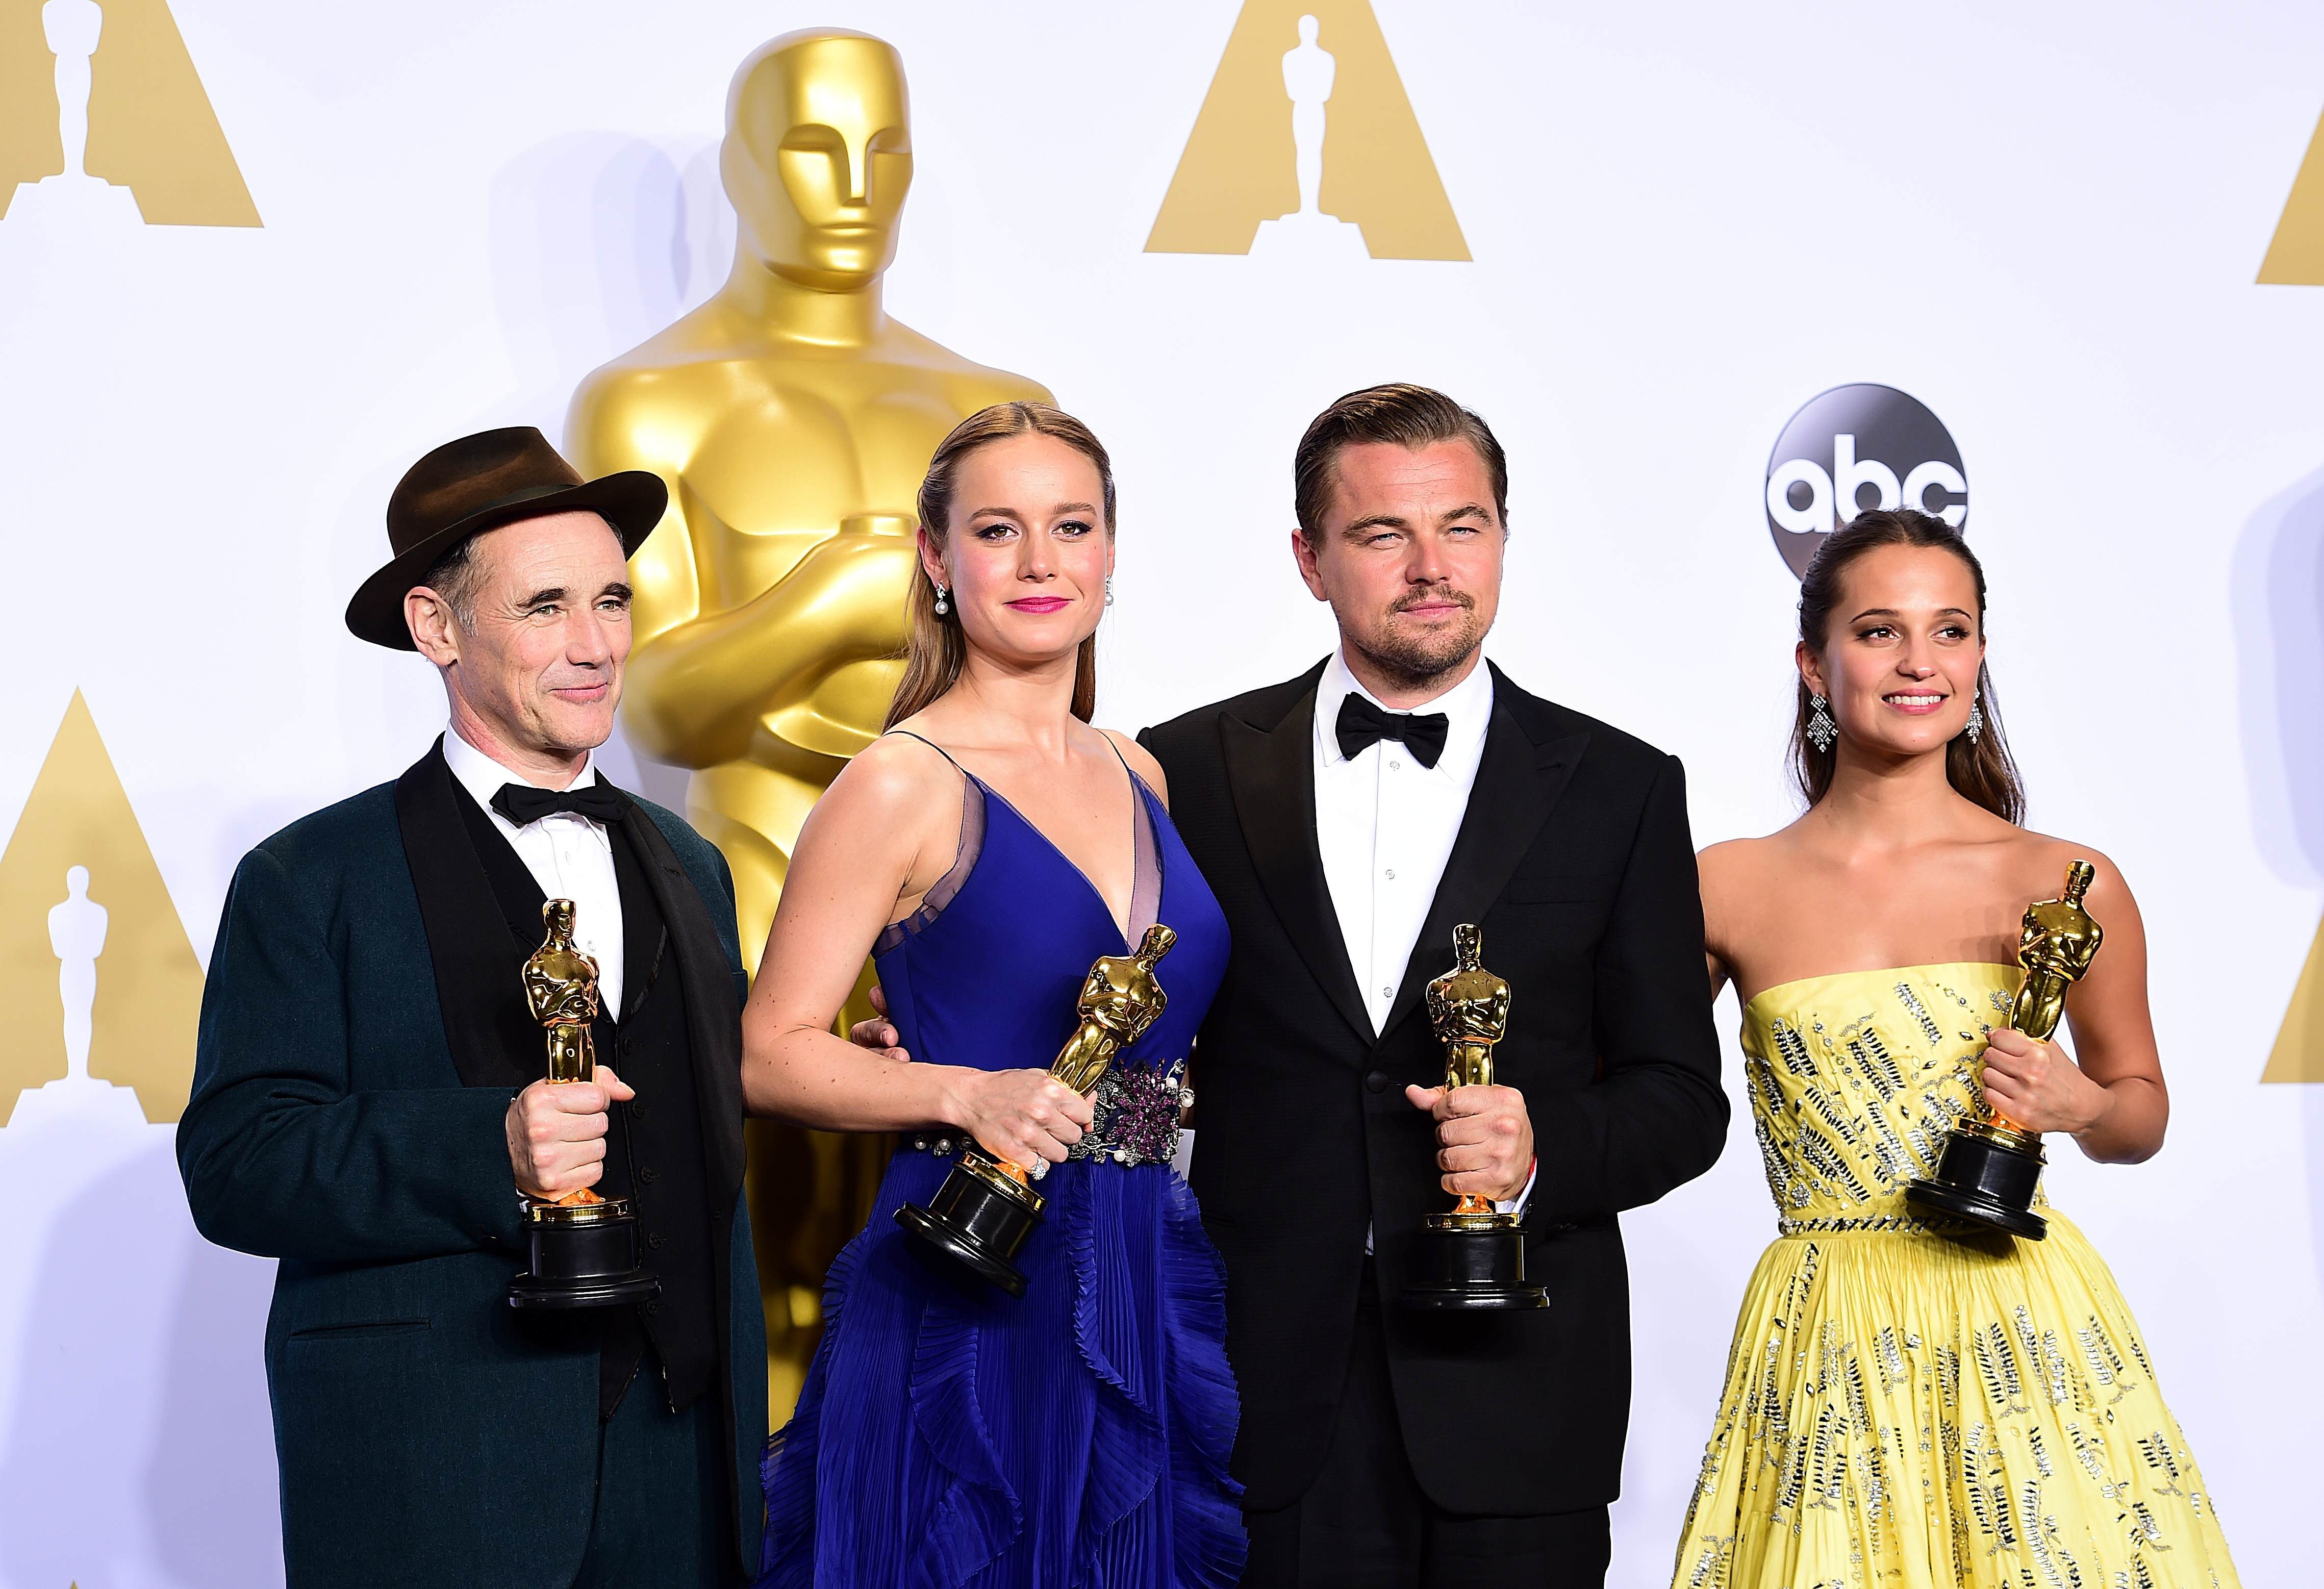 PA 25675286 Heres How The Internet Reacted To Last Nights Oscars